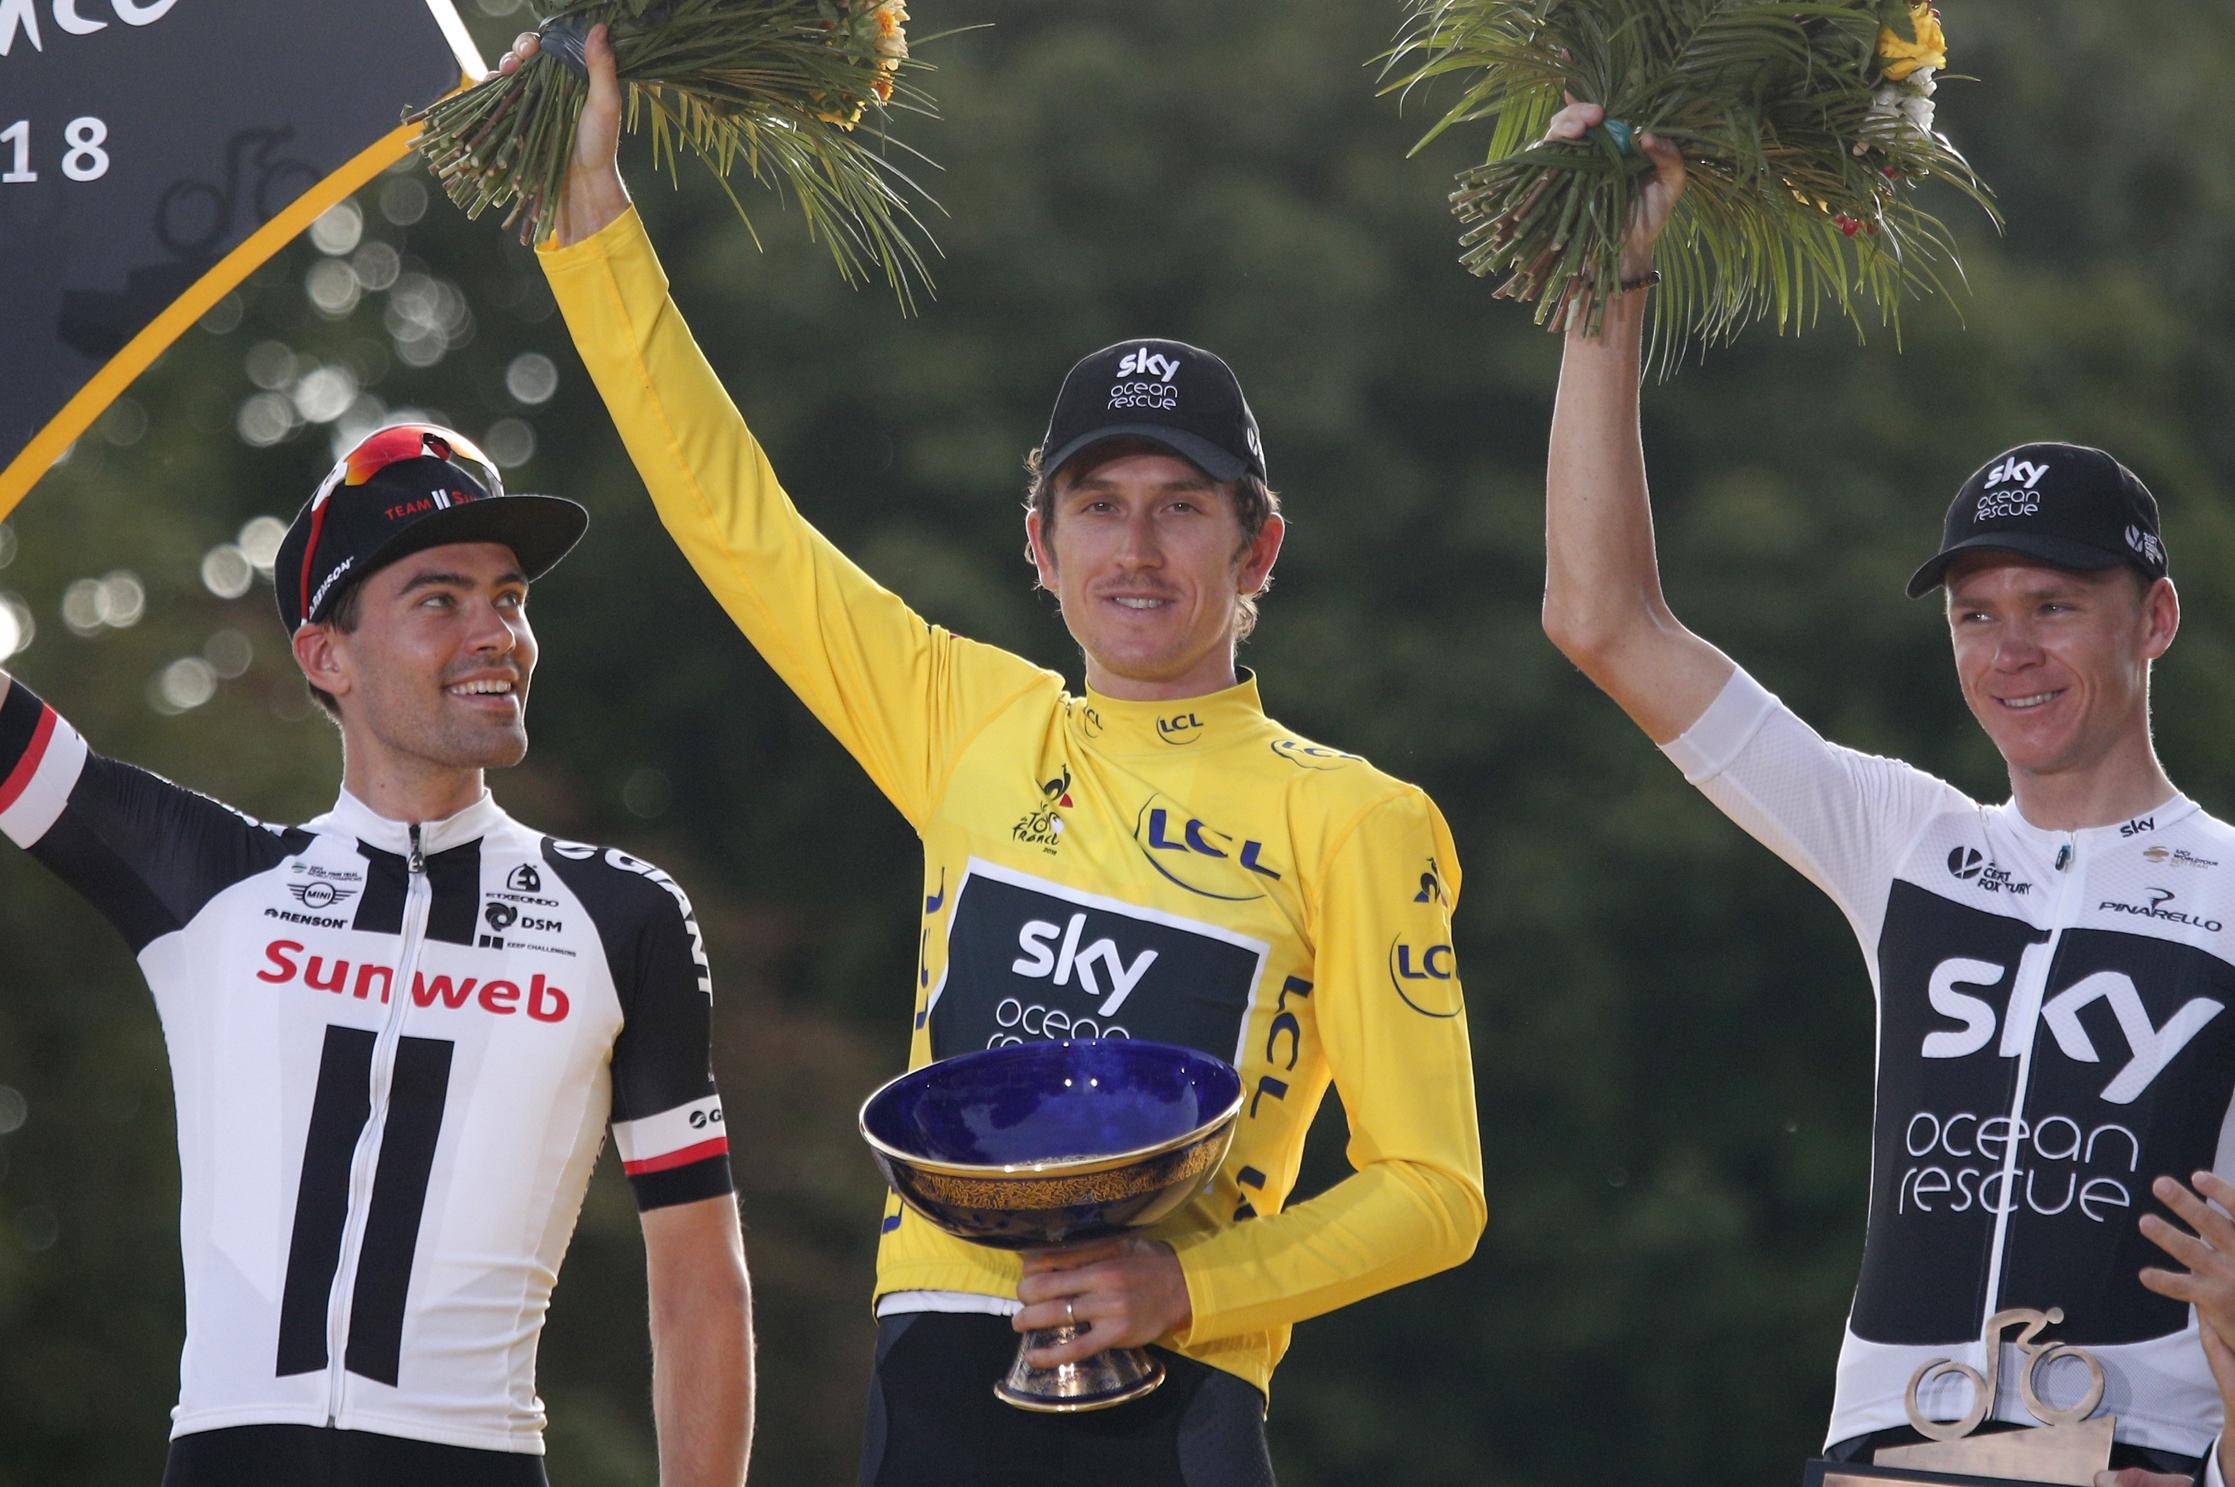 Geraint Thomas had the trophy he had won in Paris stolen at an event in Birmingham